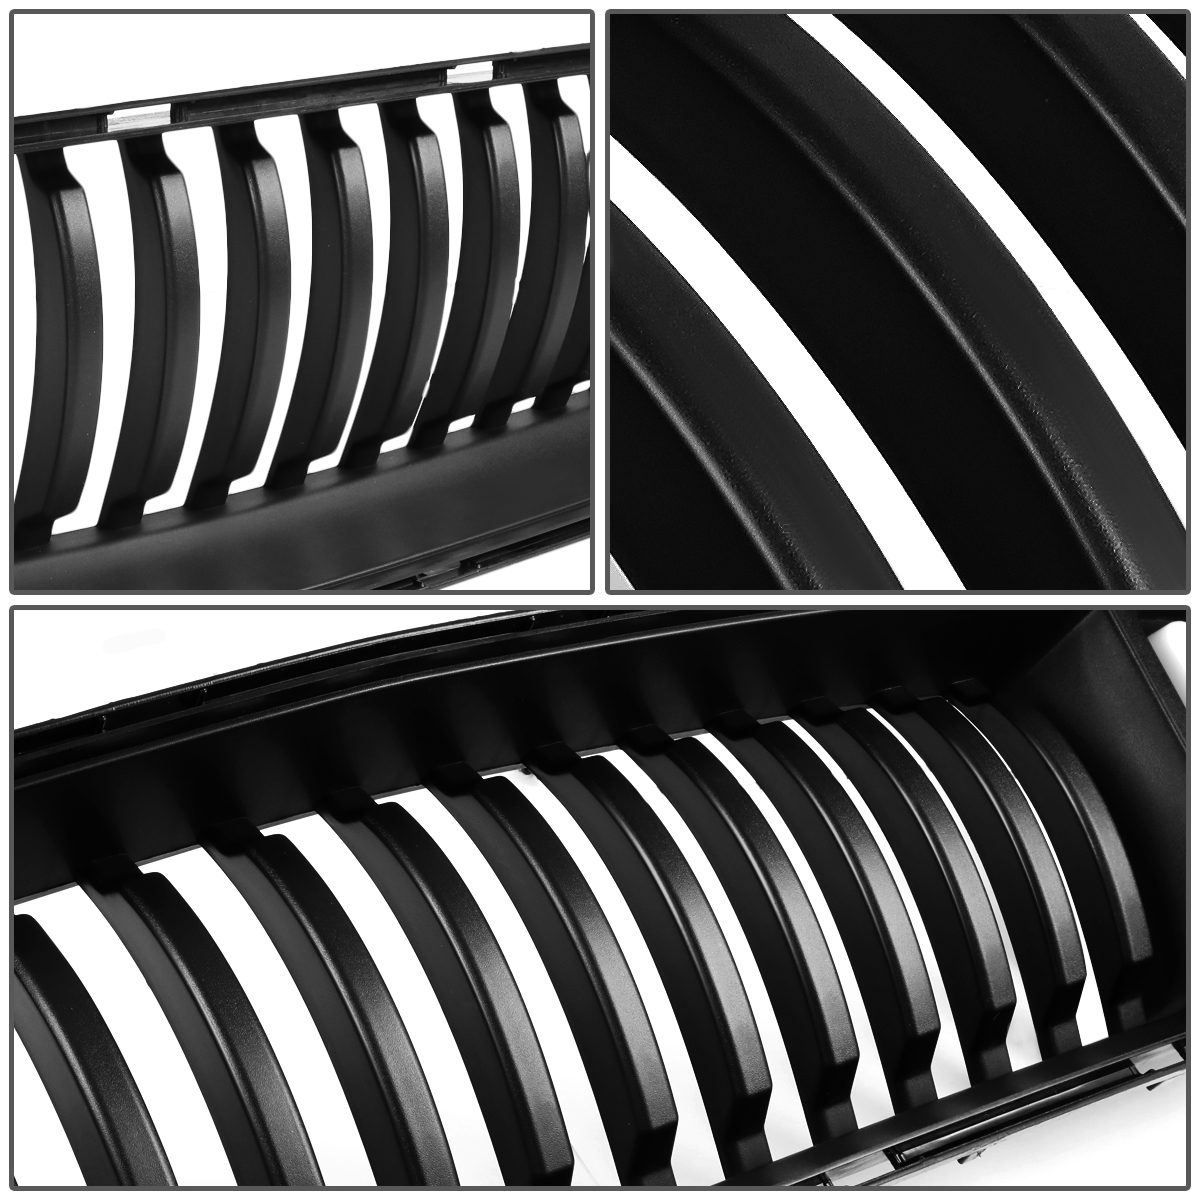 15 17 Ford Mustang Vertical Fence Front Upper Grille